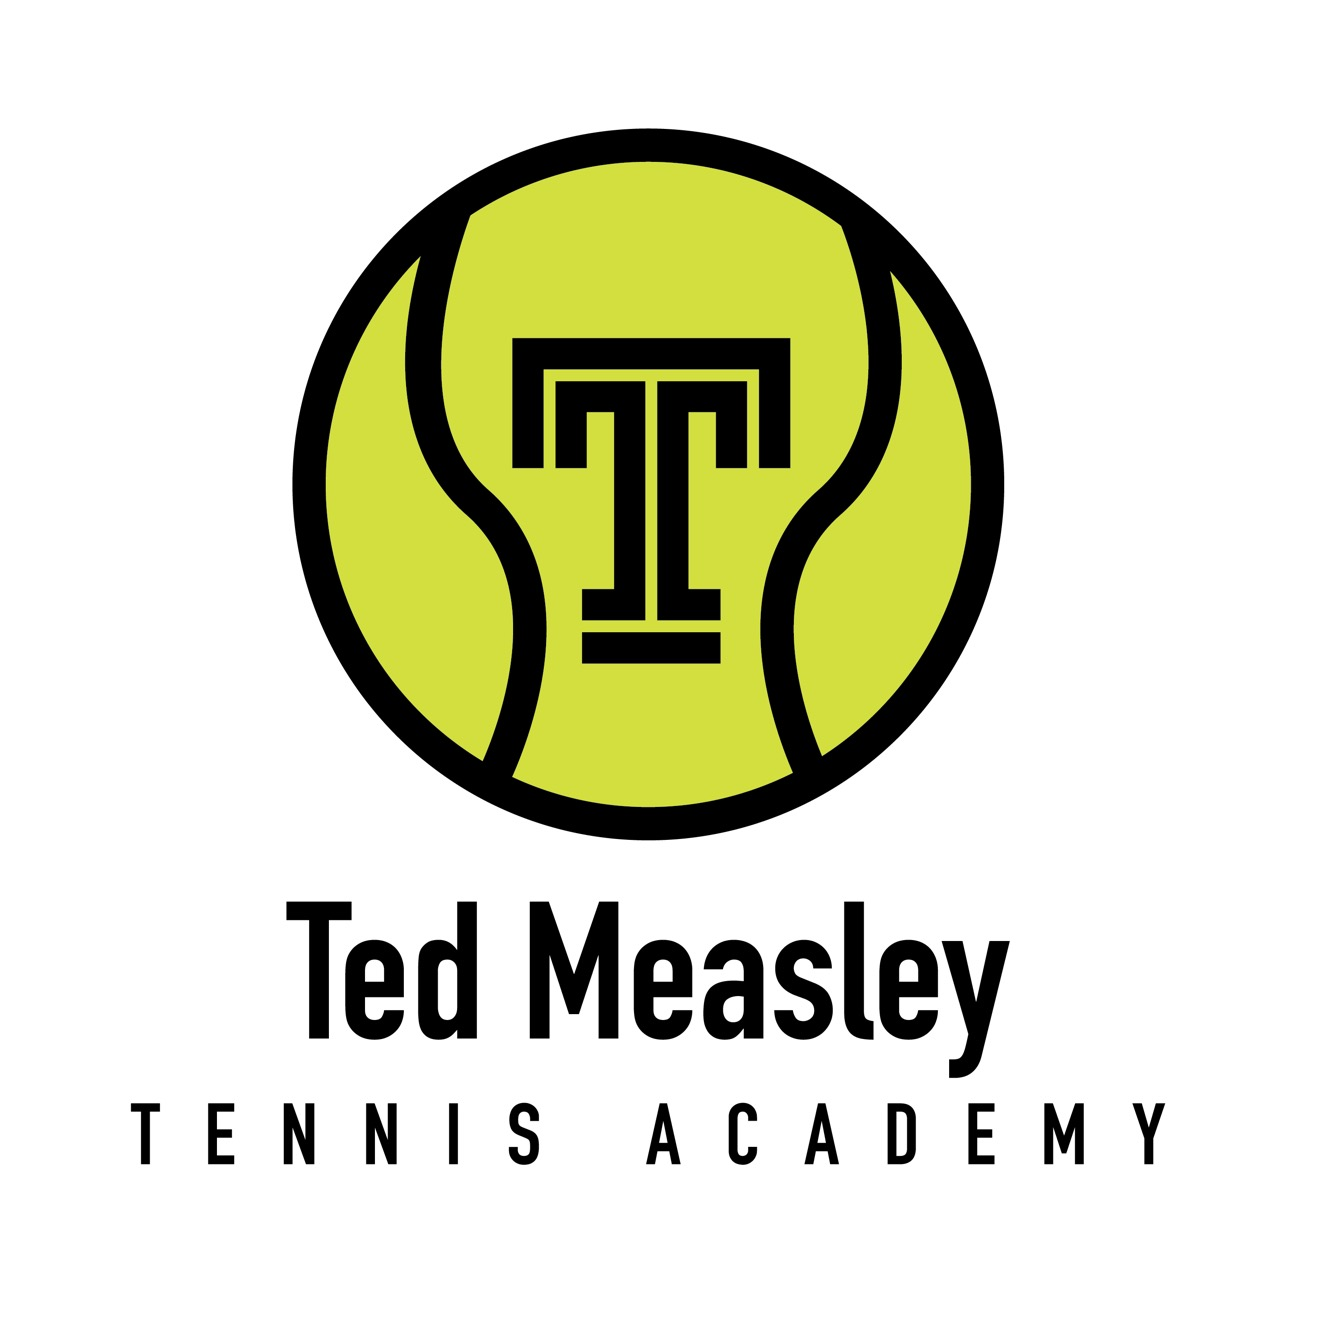 Ted Measley Tennis